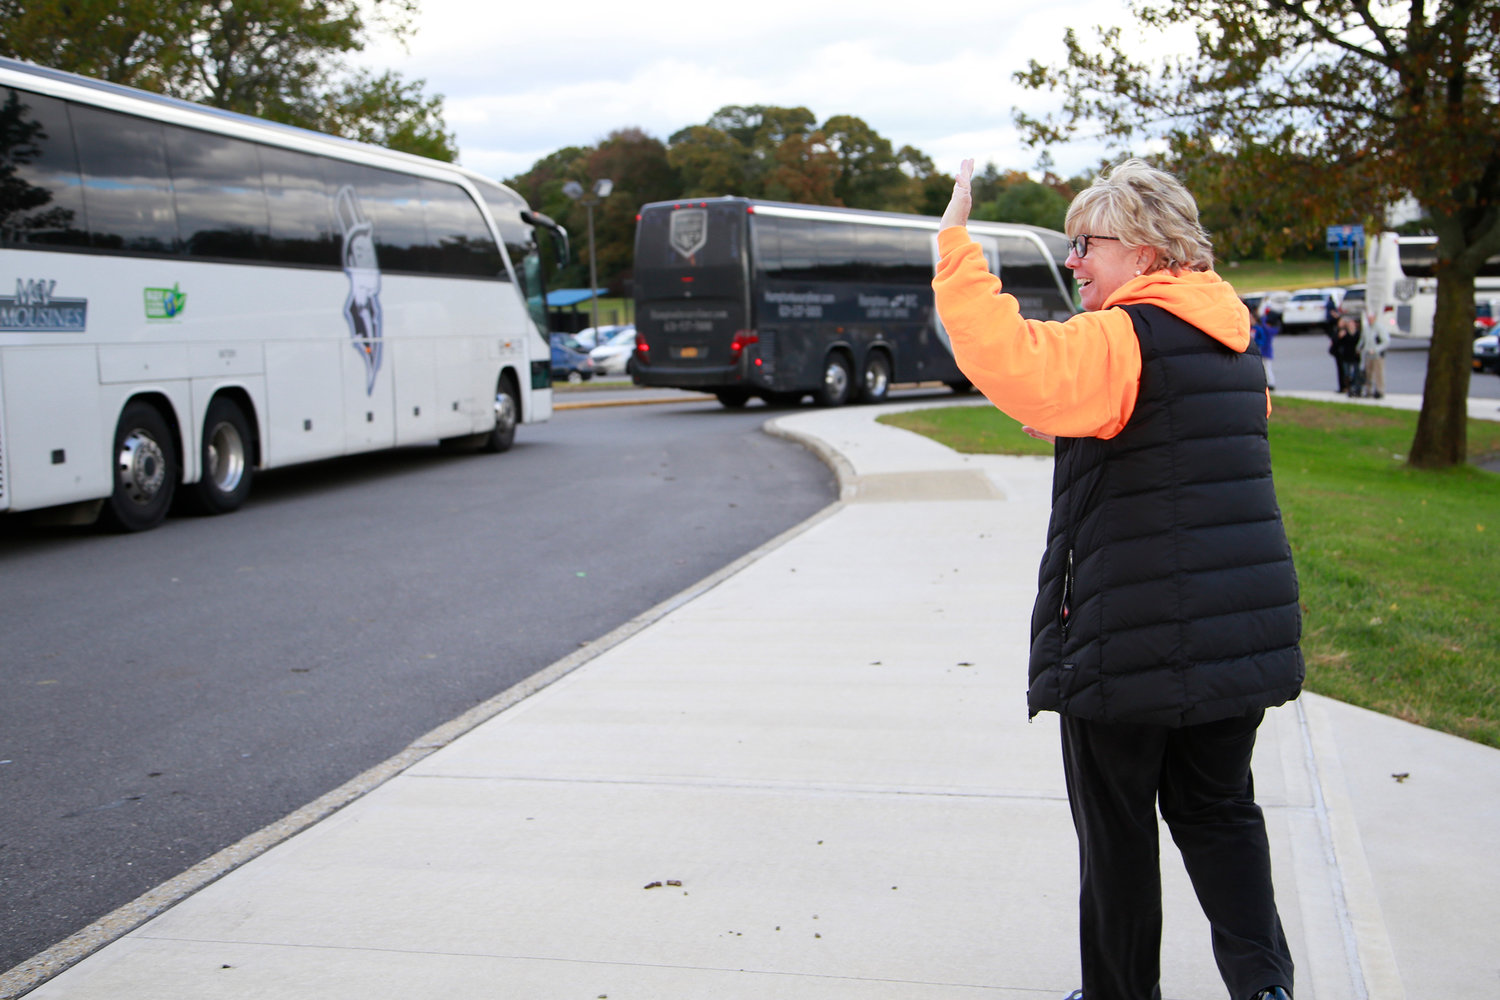 Malverne Mayor Patti Ann McDonald waved to the marching band as they arrived on the buses.